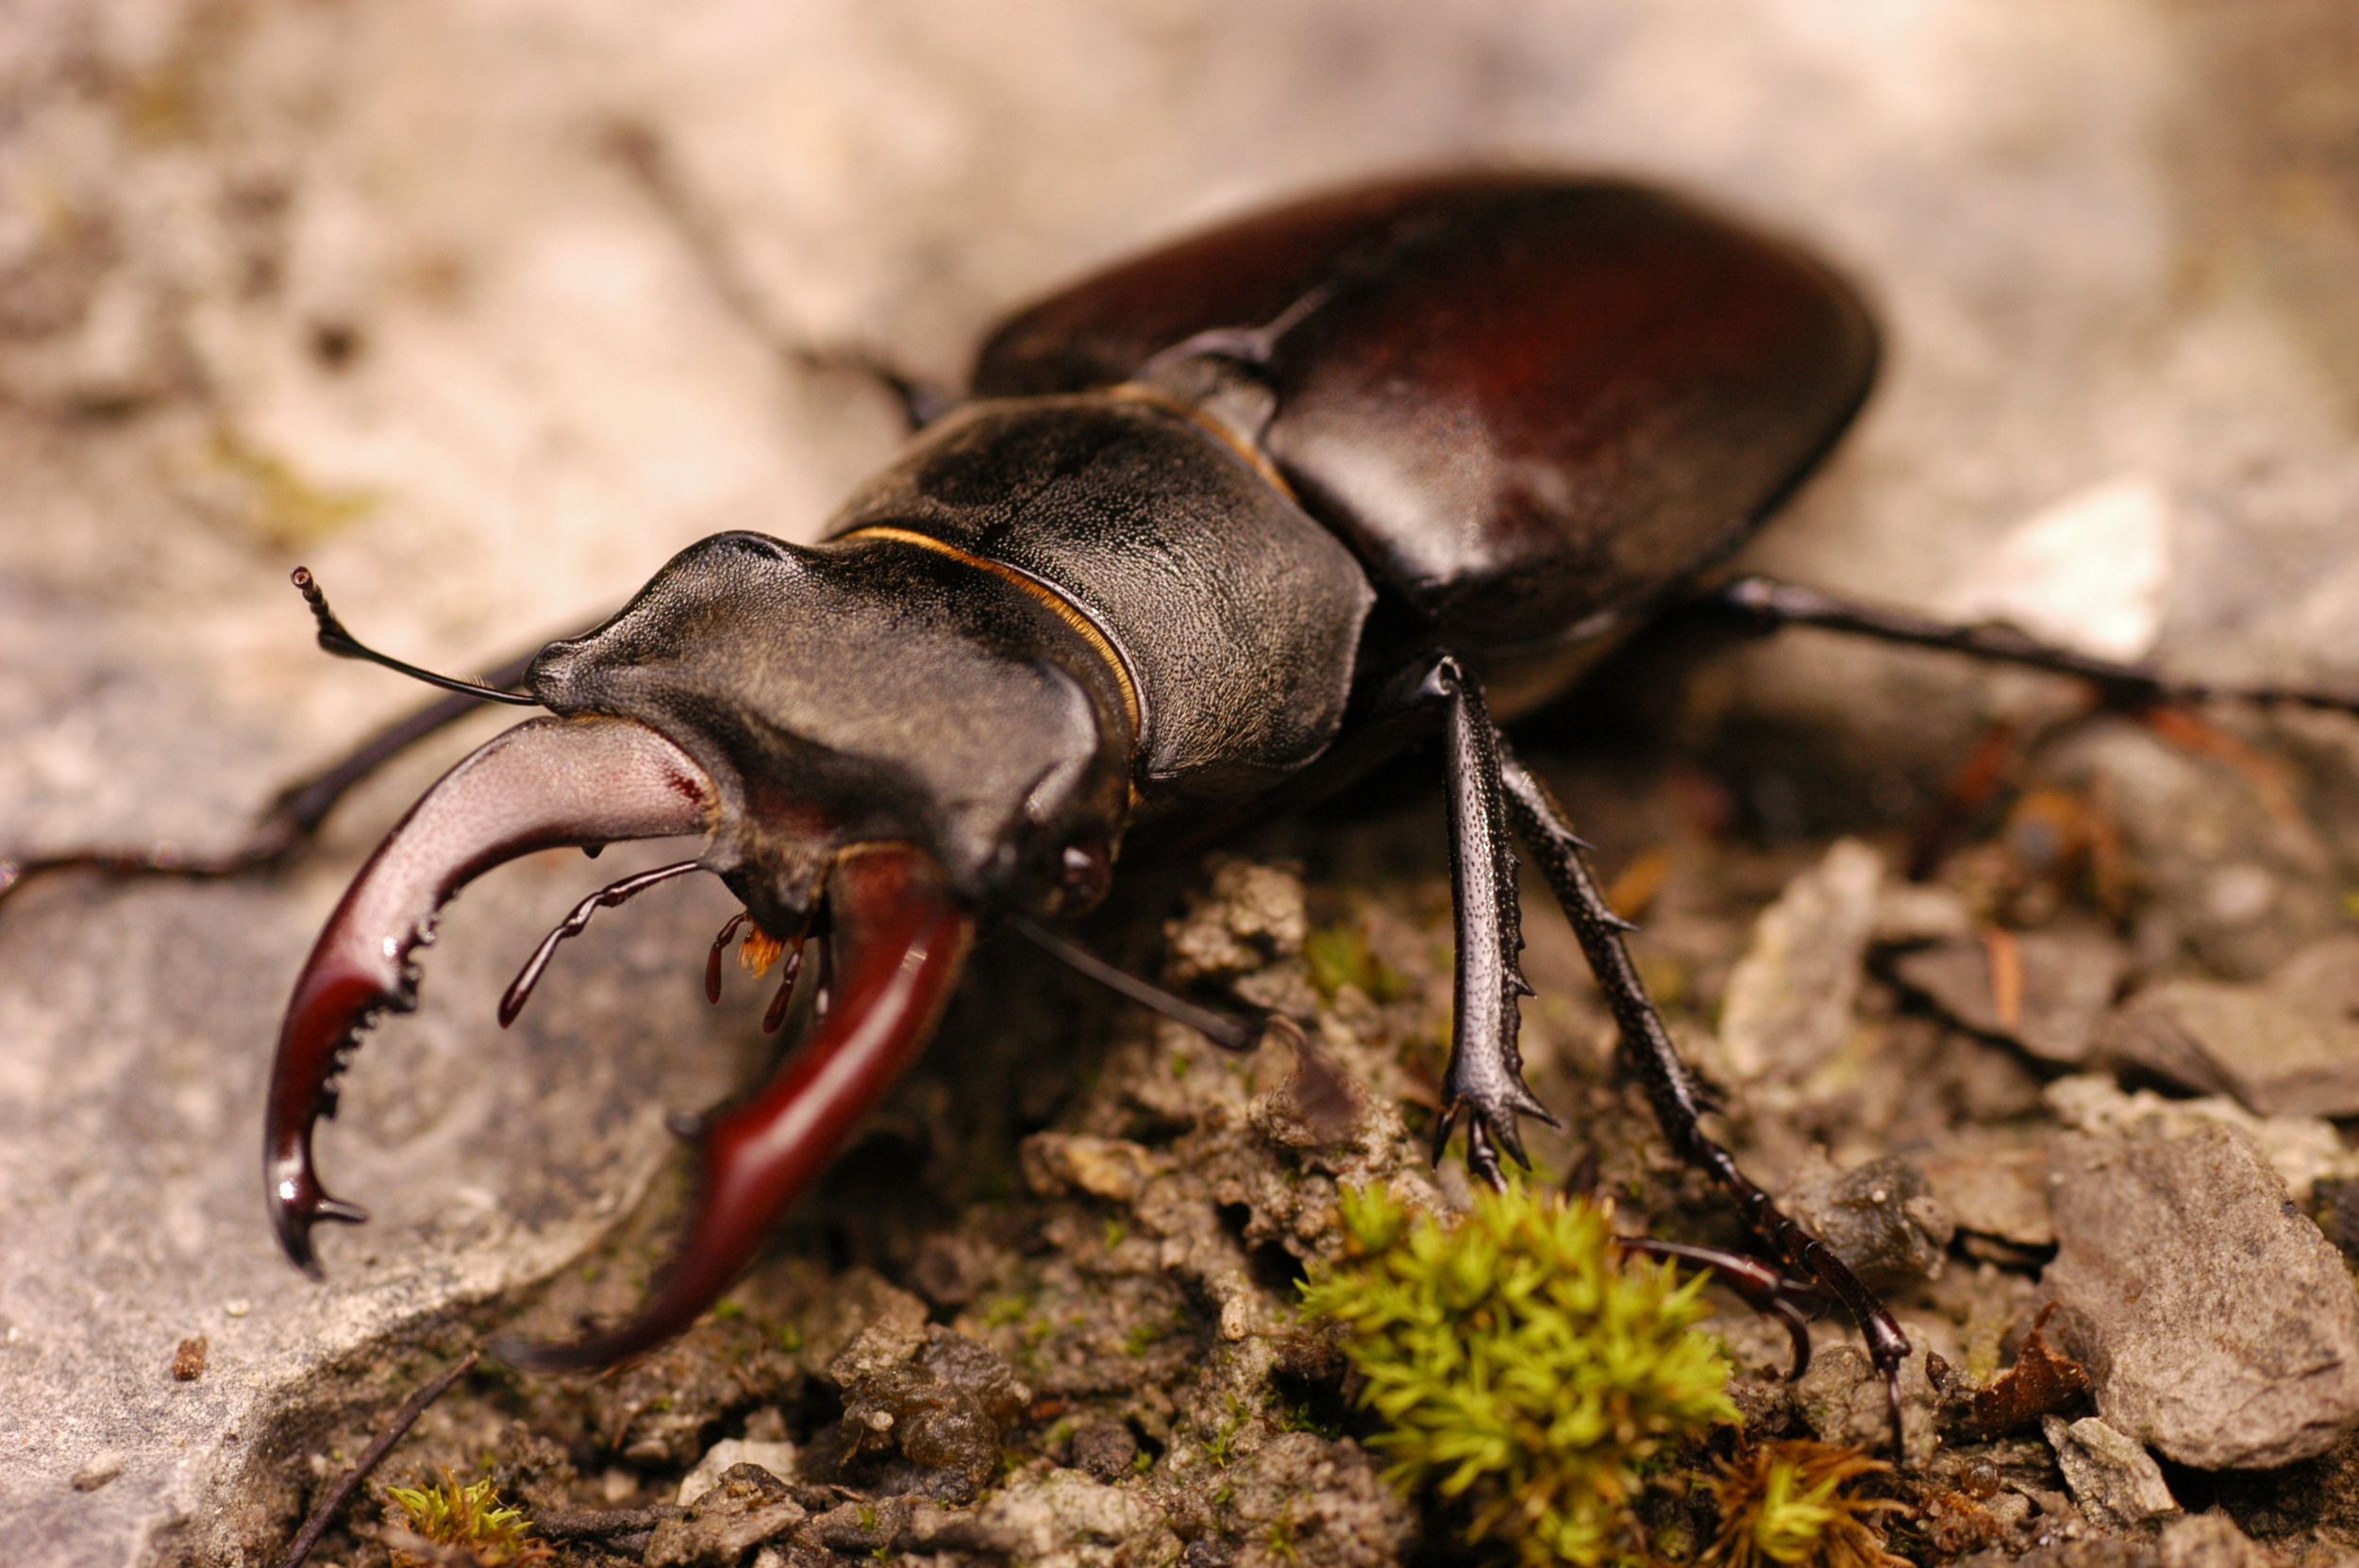 Invertebrates  The stag beetle  Lucanus cervus  has been recorded. The stag beetle is Britain's largest terrestrial beetle- between 5cm and 8cm in length. A nationally scarce and globally threatened species, it is protected under the Wildlife and Countryside Act, 1981.